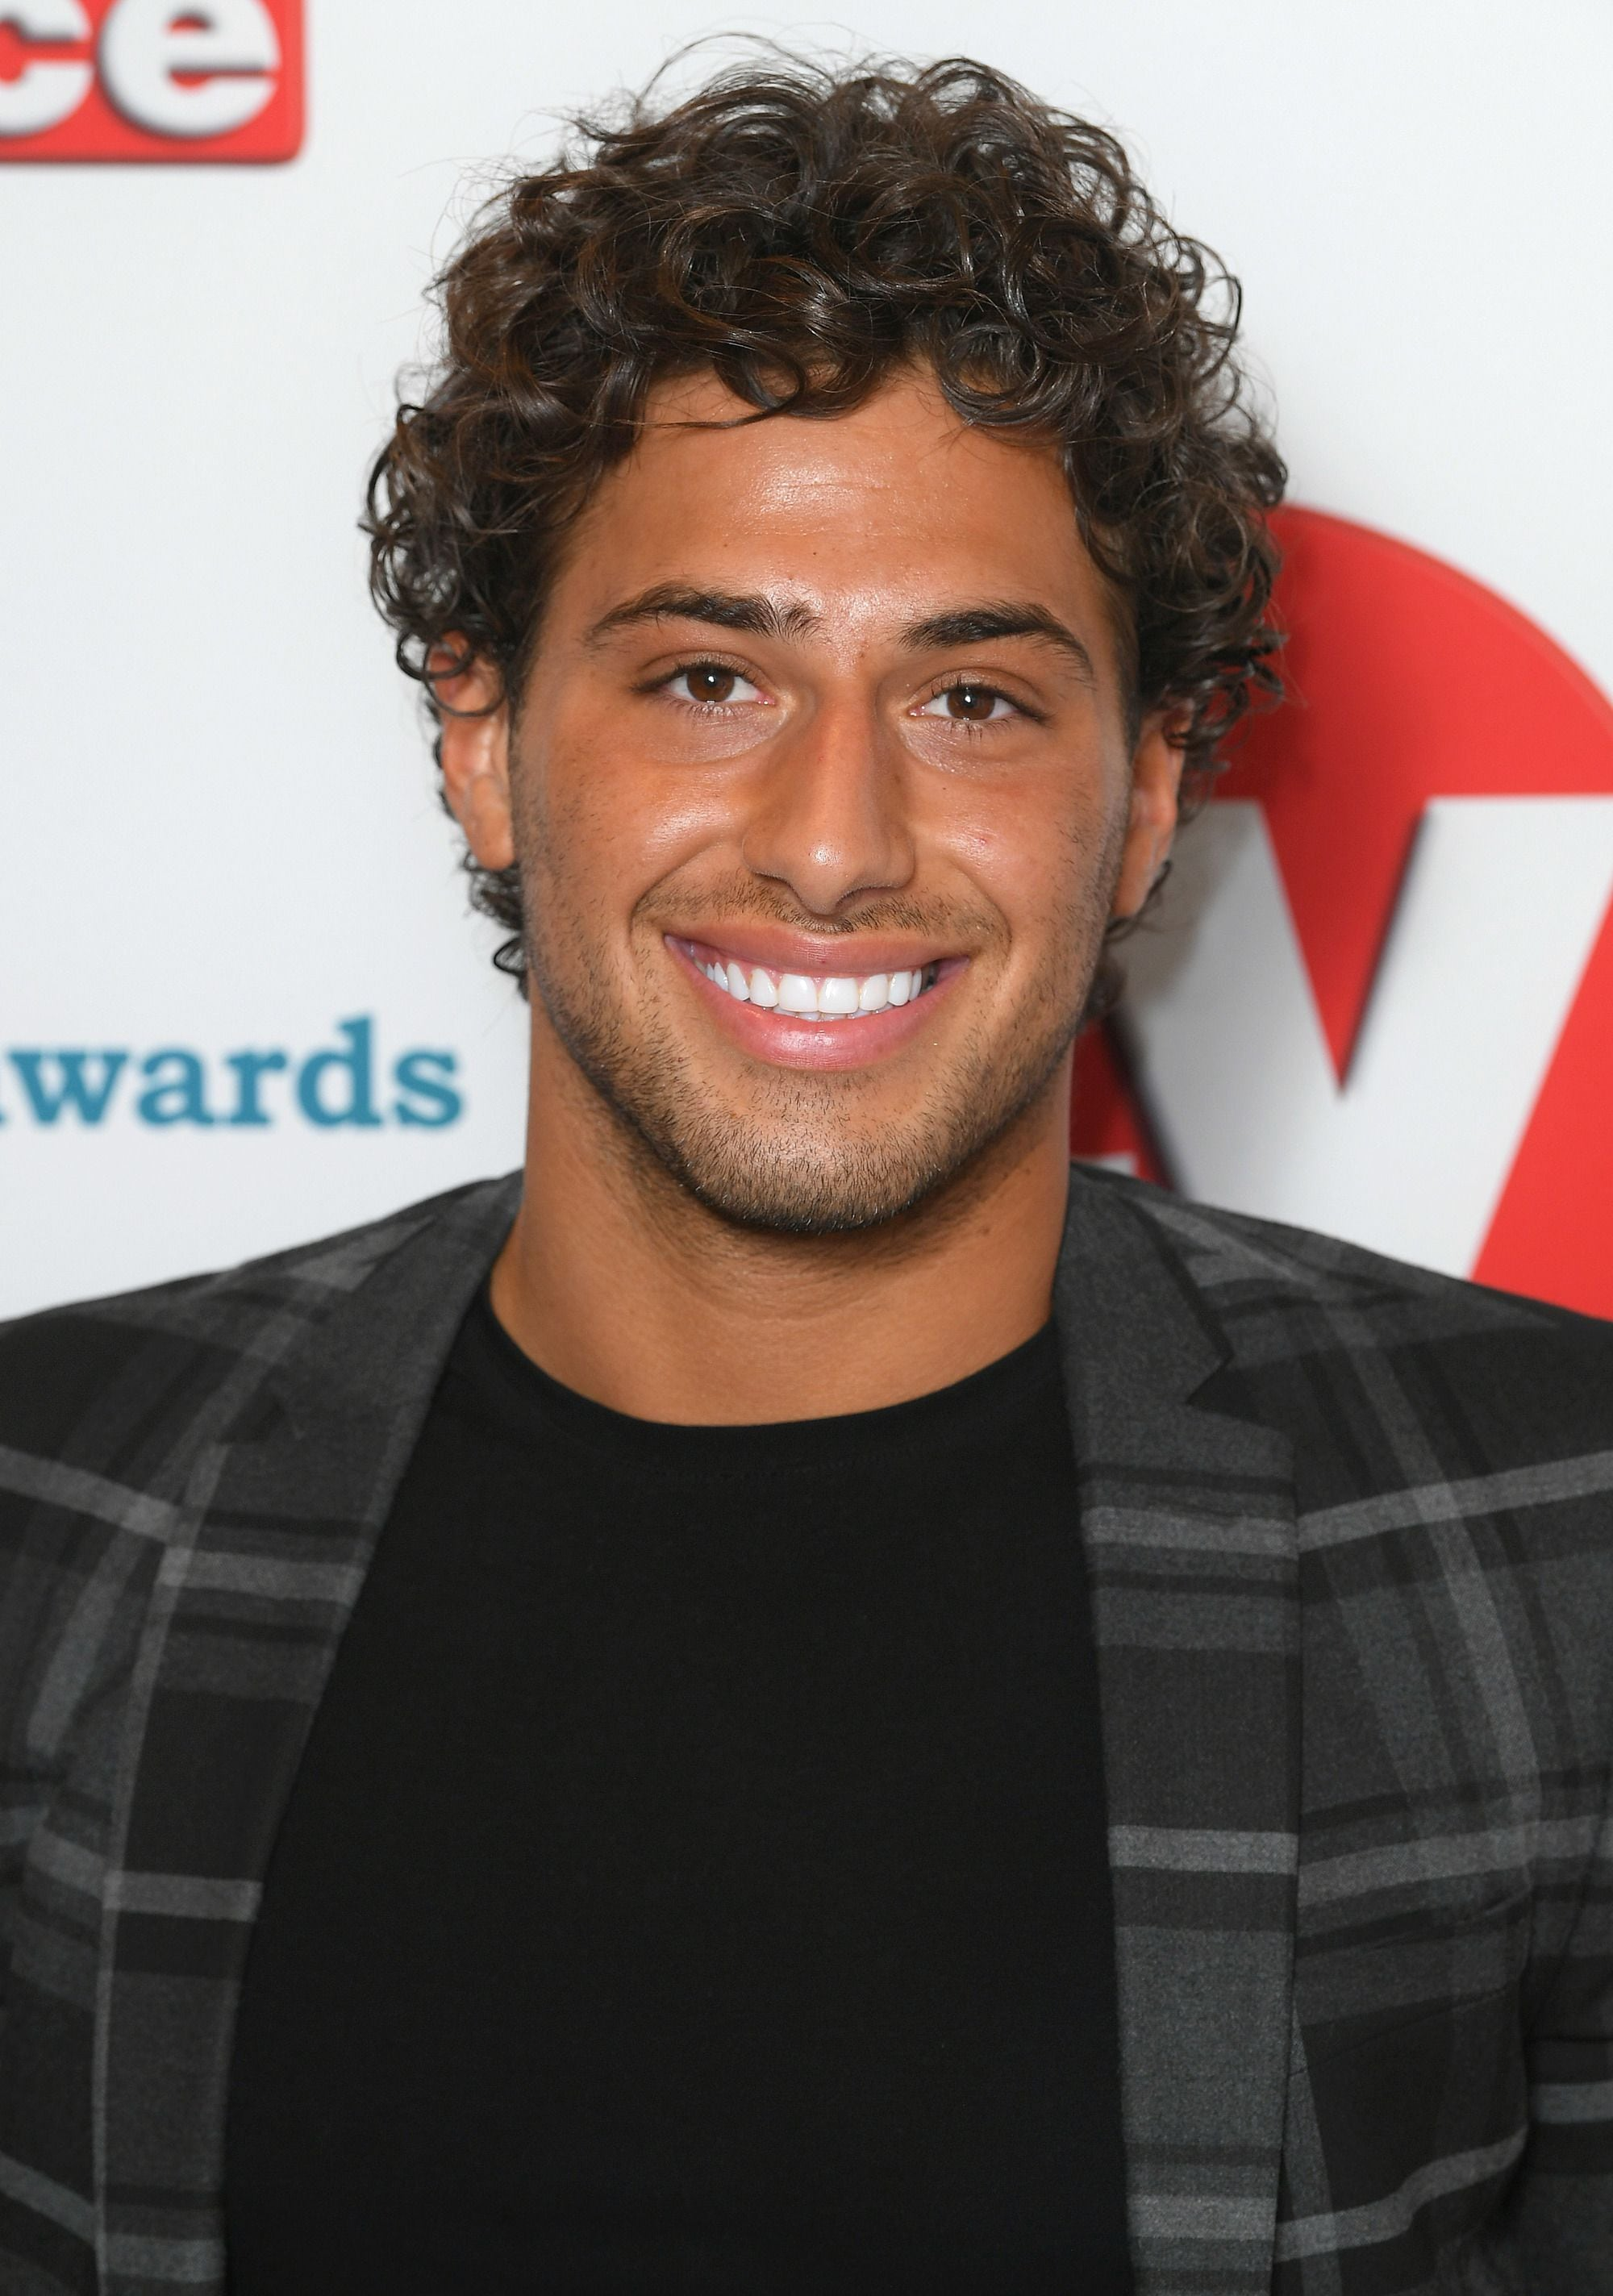 TV Choice Awards: Close up shot of Kem Cetinay with medium chocolate brown curly crop, wearing check blazer on the red carpet